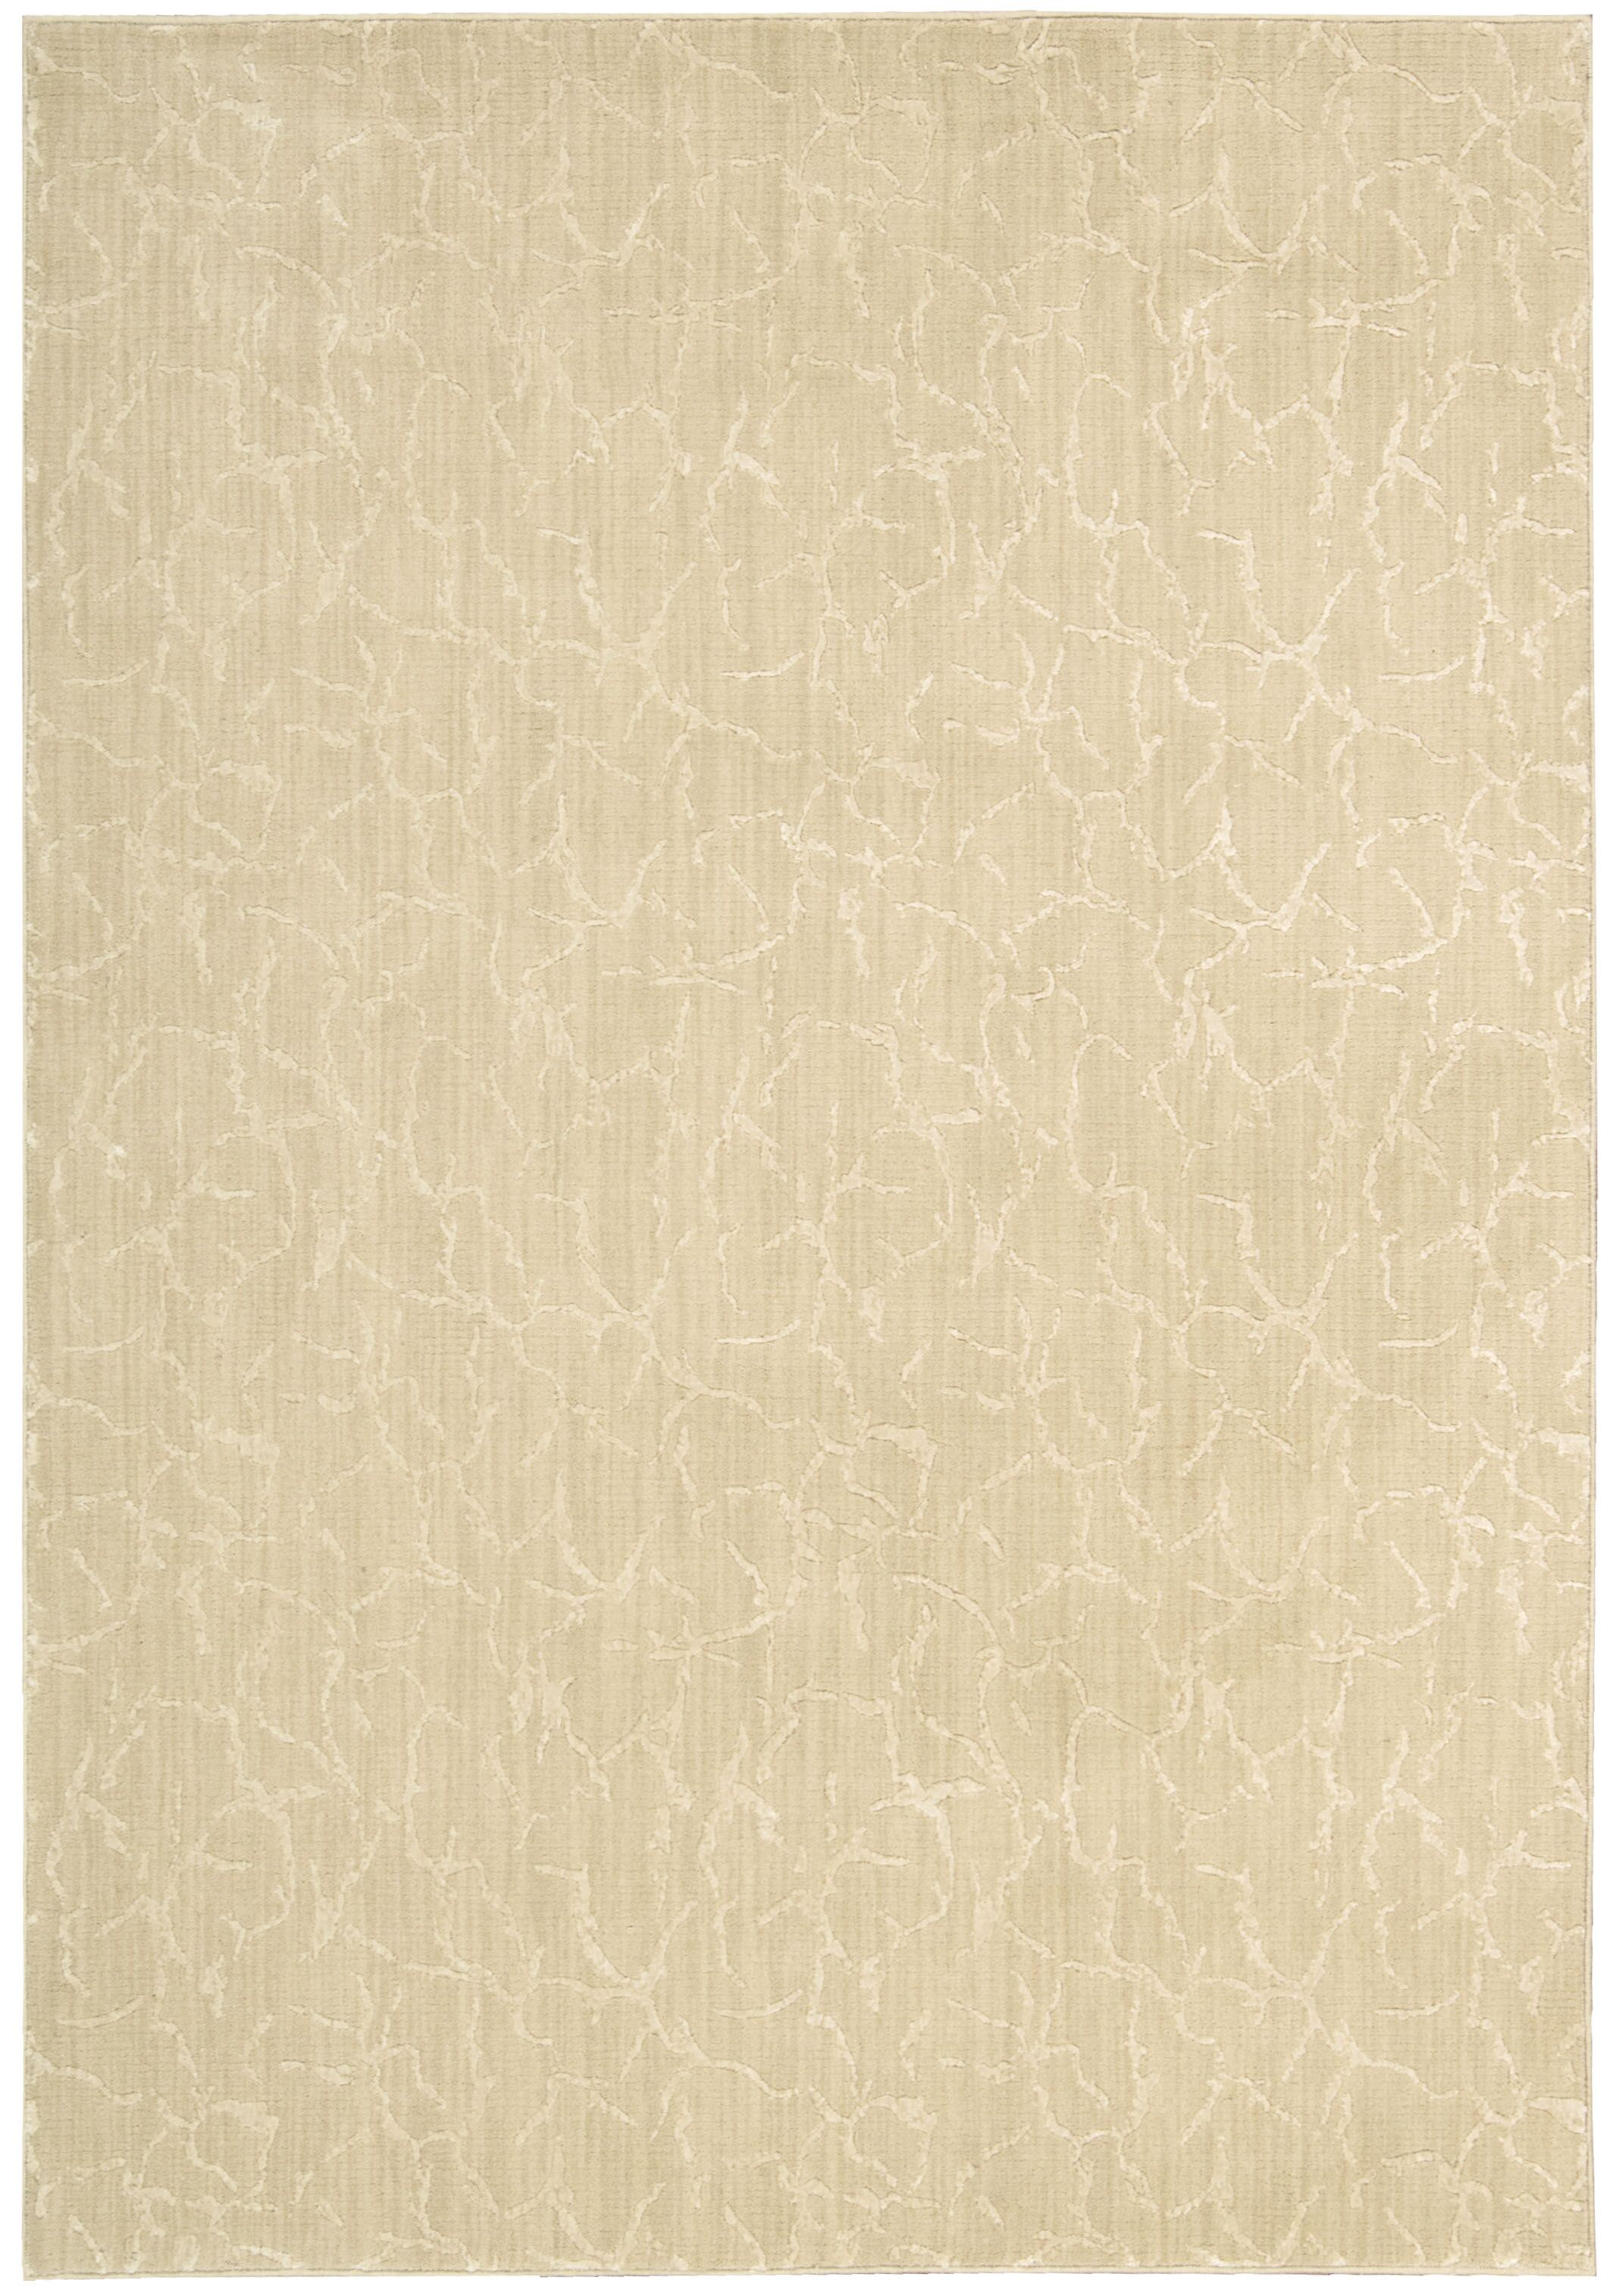 Chianna Gold Area Rug Rug Size: Rectangle 5'3